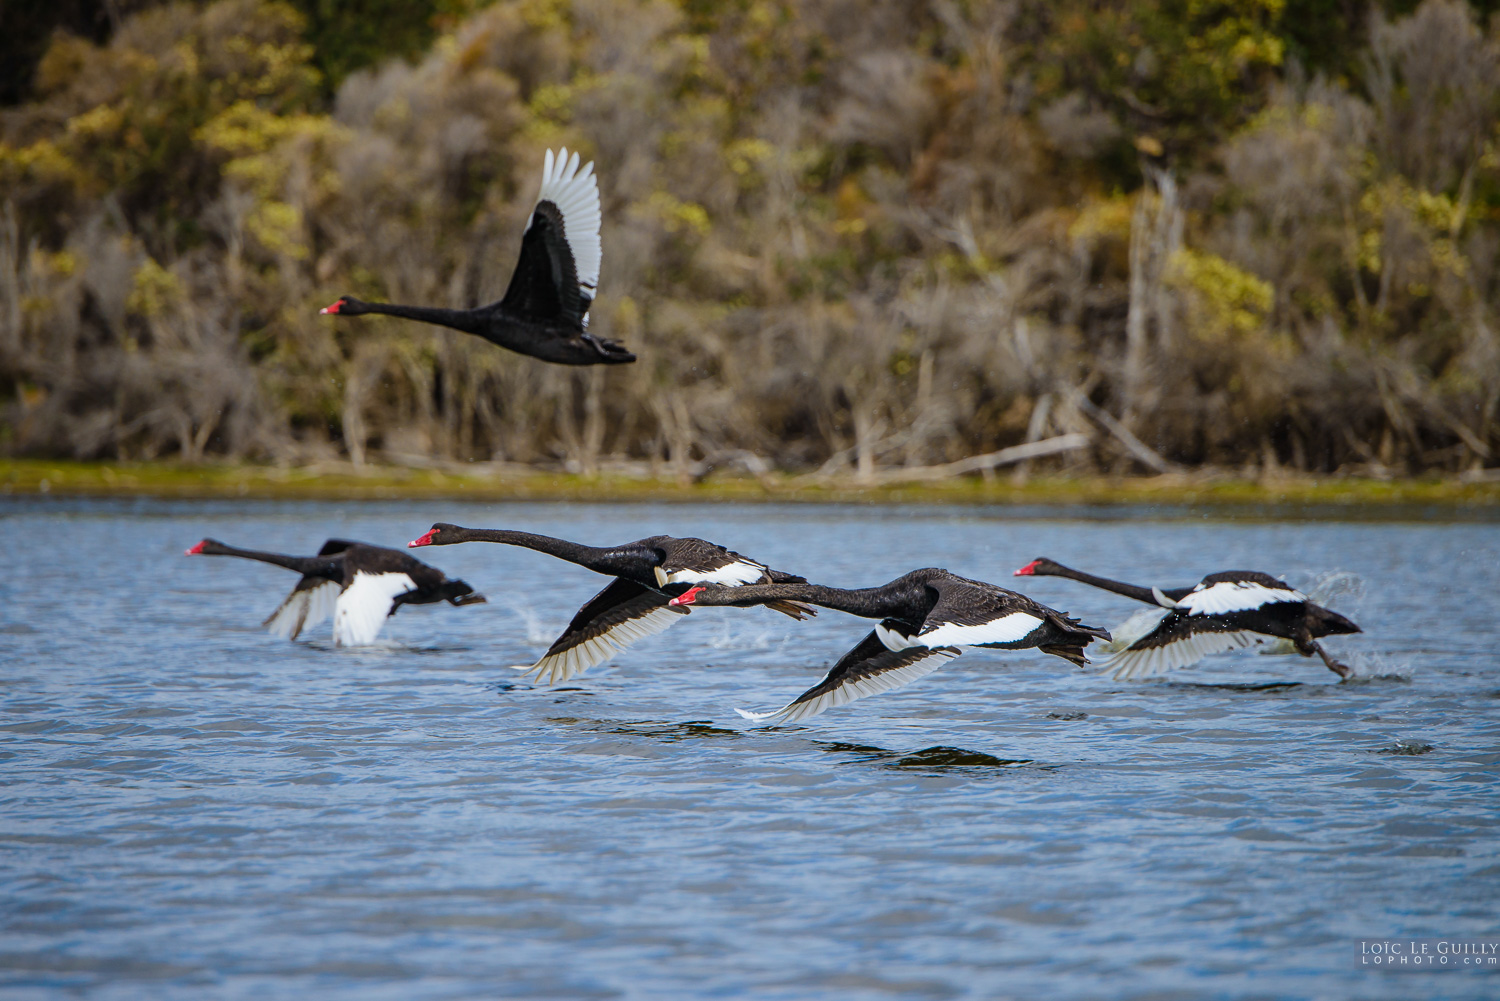 photograph of Black swans taking off